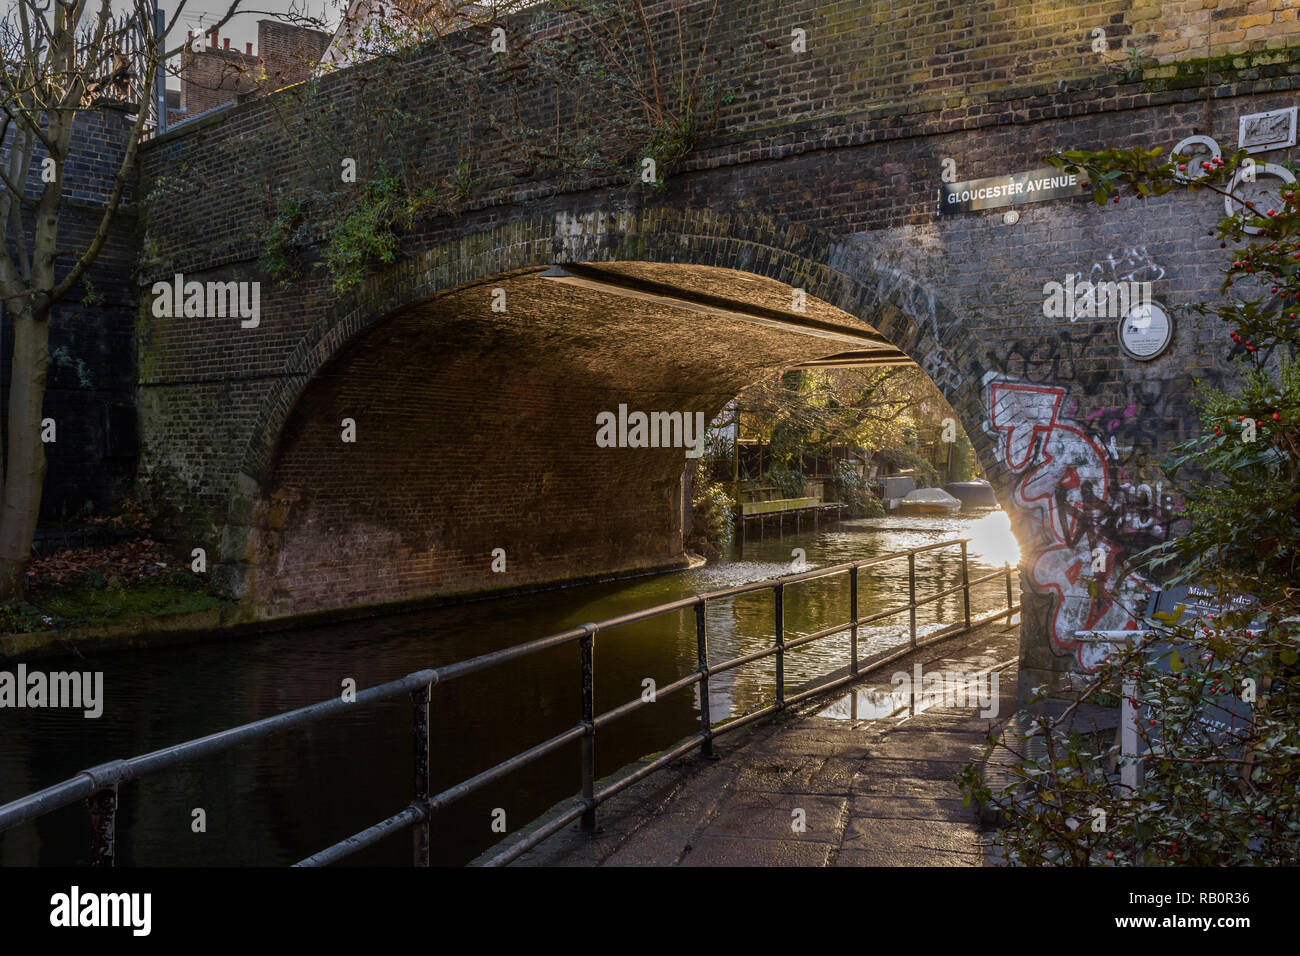 Regent's Canal Towpath - Stock Image